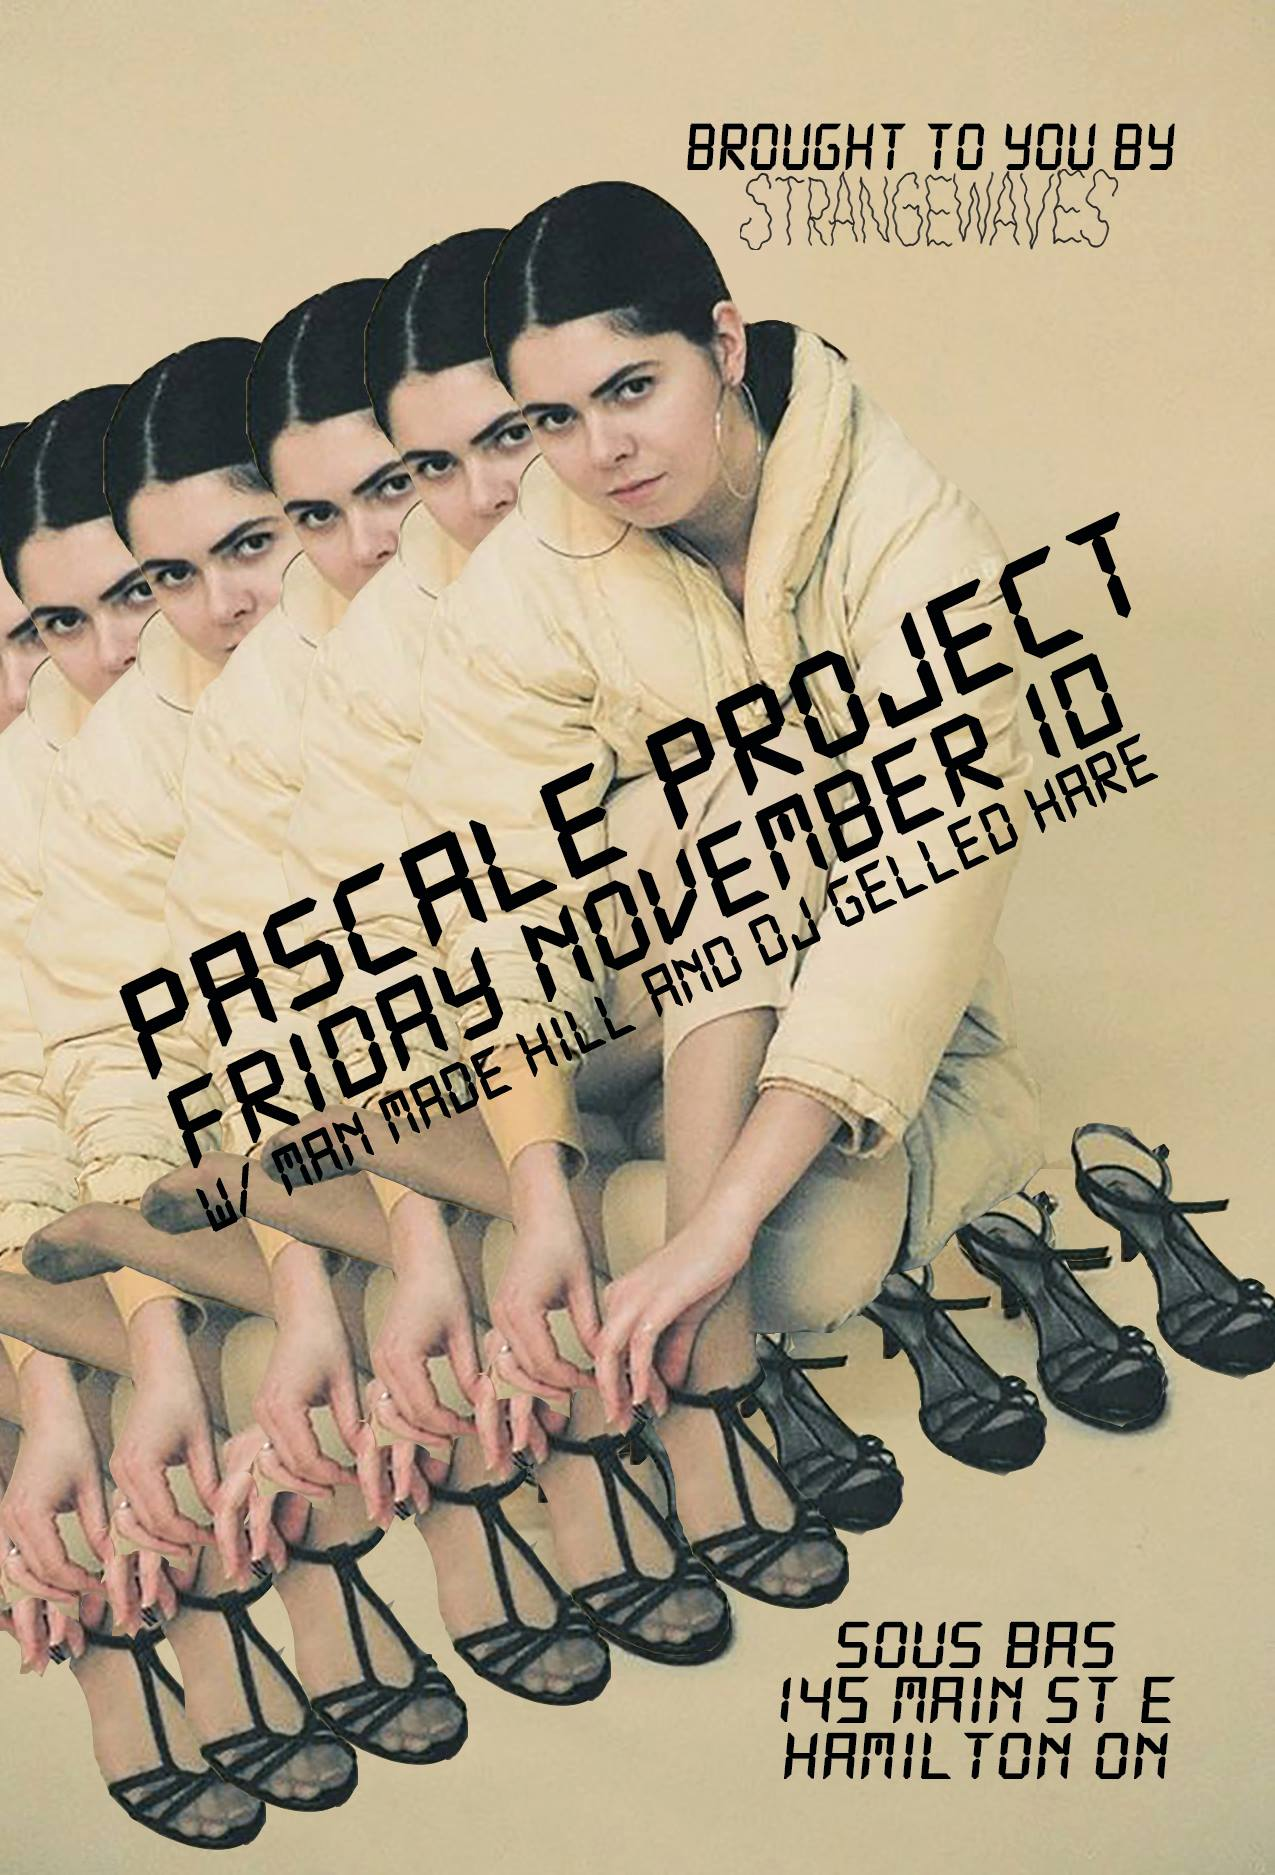 Pascale Project, Man Made Hill, DJ Gelled Hare  @Sous Bas